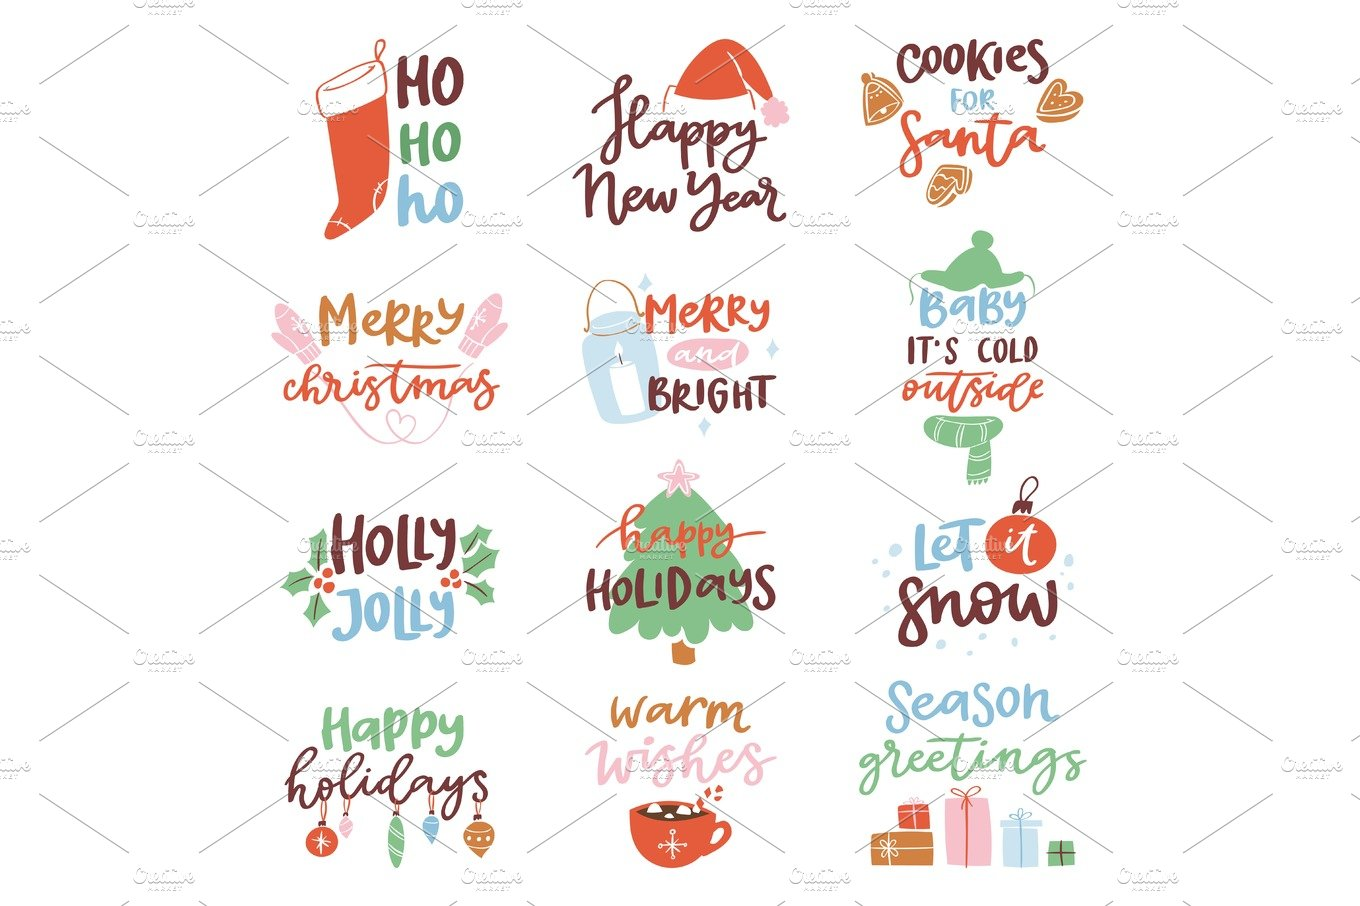 2018 happy new year text logo badge lettering holiday calendar print design christmass newborn party illustration graphic objects creative market